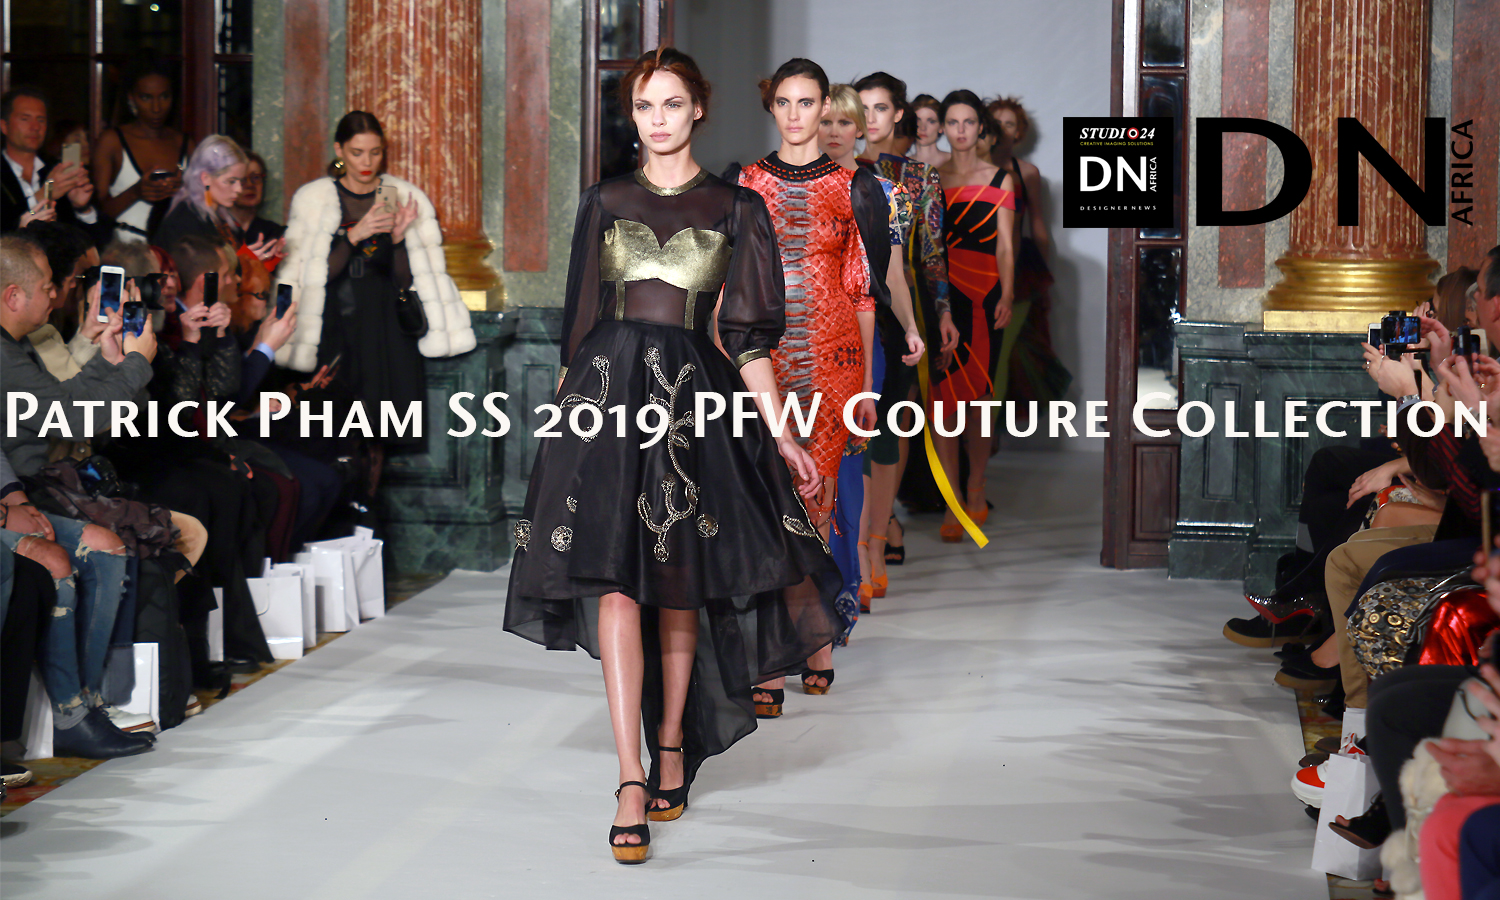 AFRICAN FASHION STYLE MAGAZINE - Patrick Pham SS 2019 PFW Couture Collection -LOCATION HOTEL INTERCONTINENTAL -PR MEPHISTOPHELES PRODUCTIONS - -Official Media Partner DN AFRICA -STUDIO 24 NIGERIA - STUDIO 24 INTERNATIONAL - Ifeanyi Christopher Oputa MD AND CEO OF COLVI LIMITED AND STUDIO 24 - CHEVEUX CHERIE STUDIO BY MARIEME DUBOZ